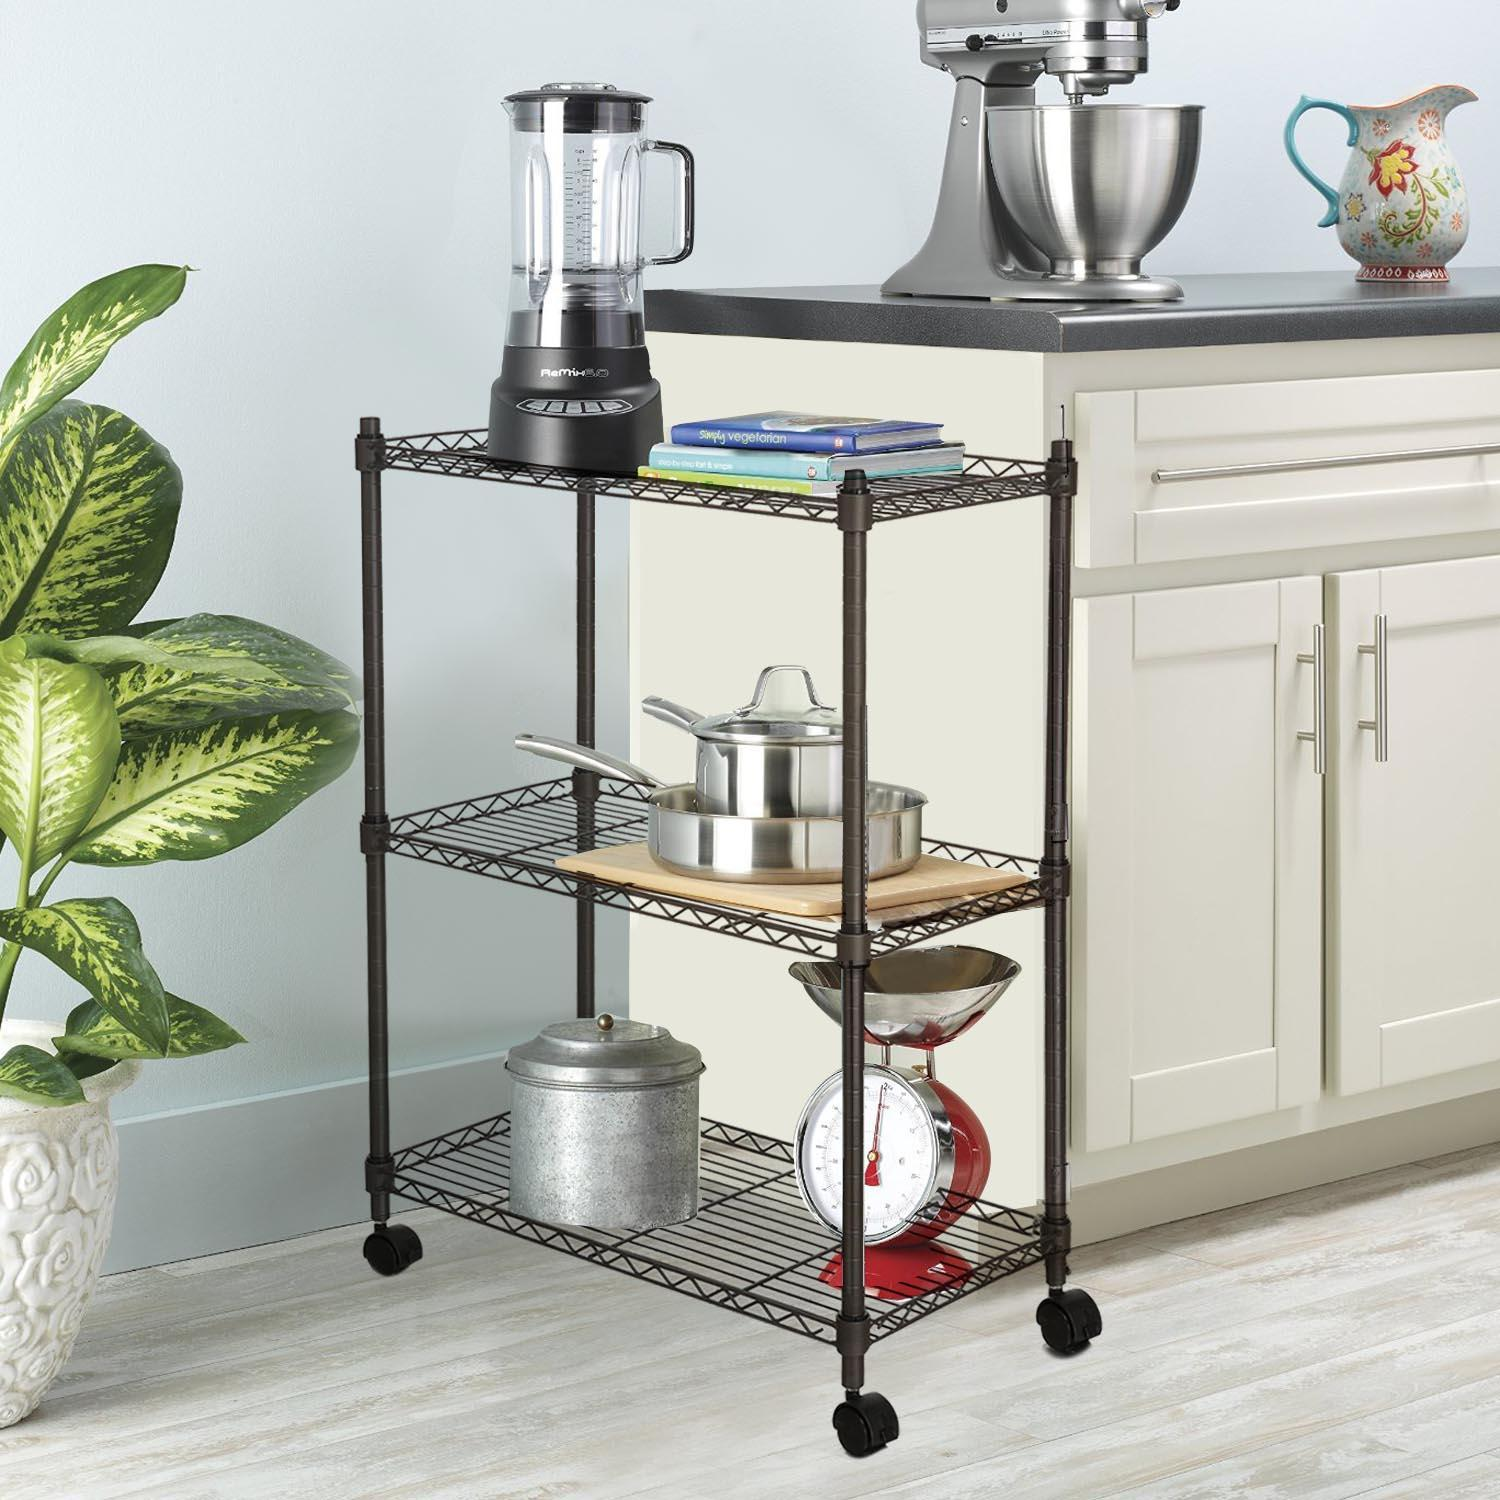 metal kitchen rack non skid rugs racks 3 tier heavy duty microwave oven stand storage cart